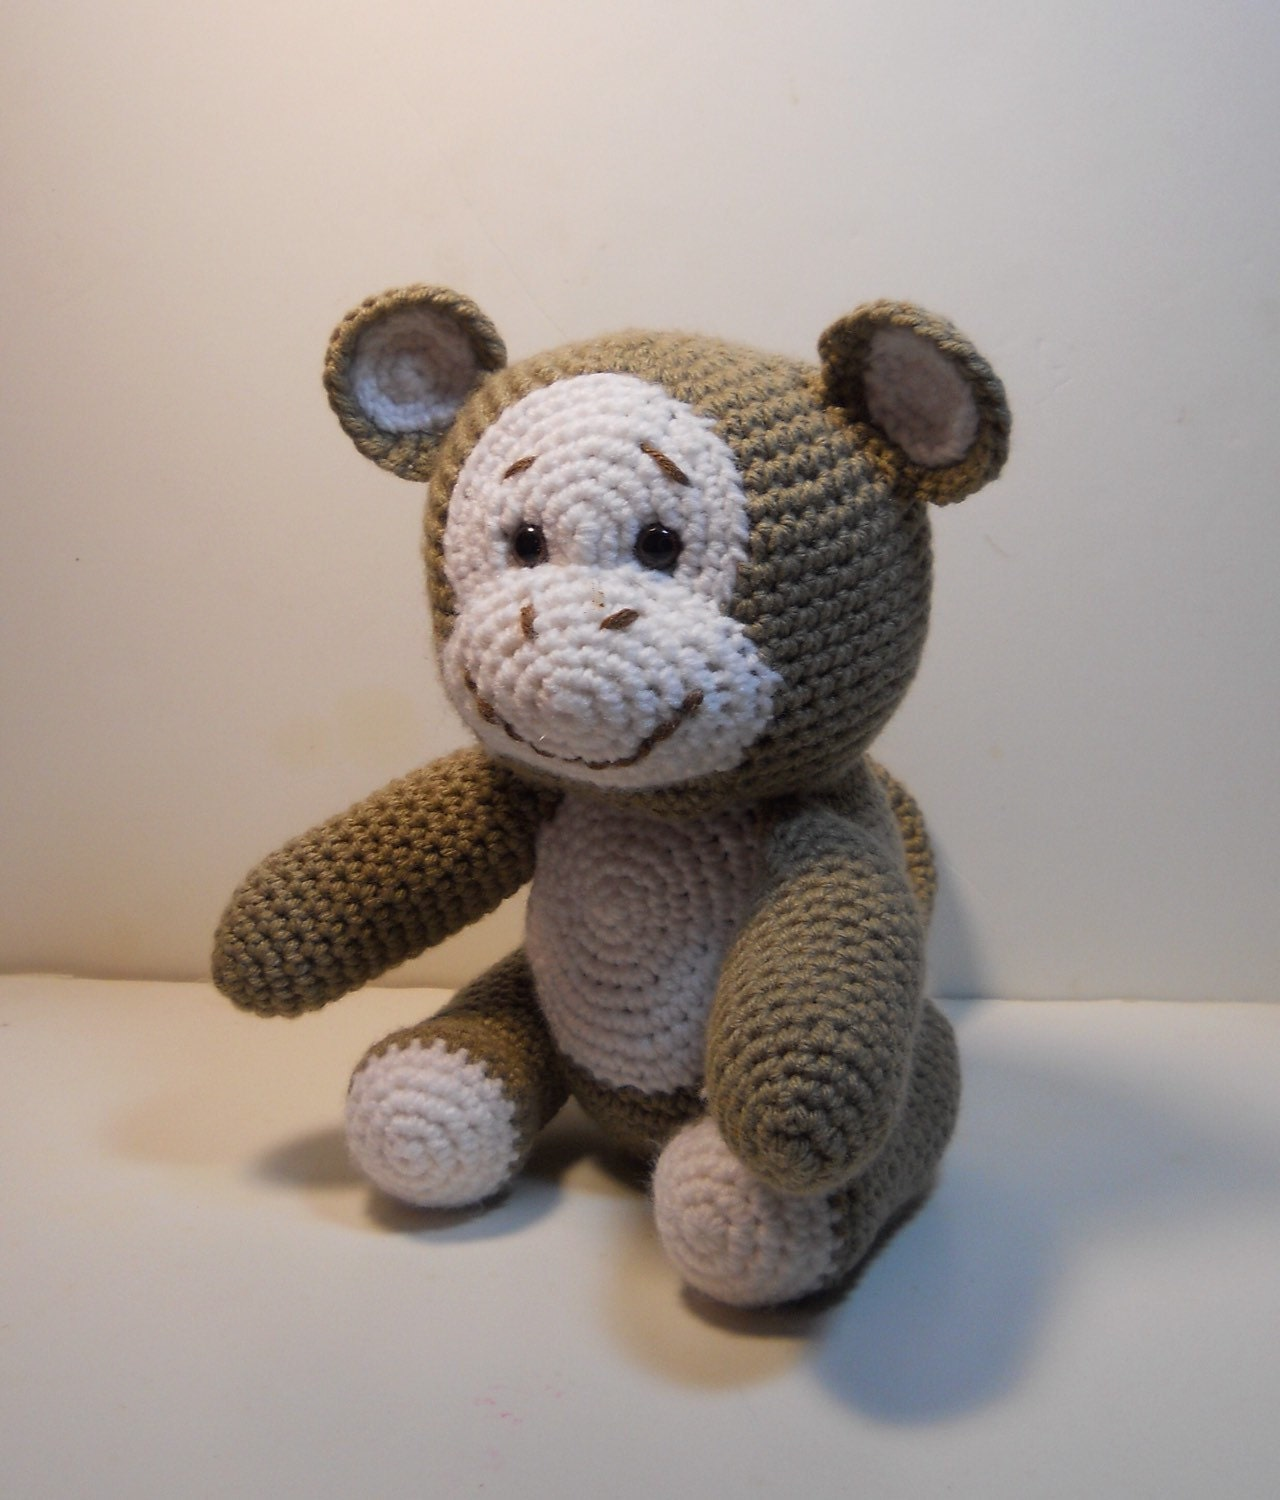 Amigurumi Monkey Etsy : Crocheted Monkey amigurumi style stuffed animal. by ...